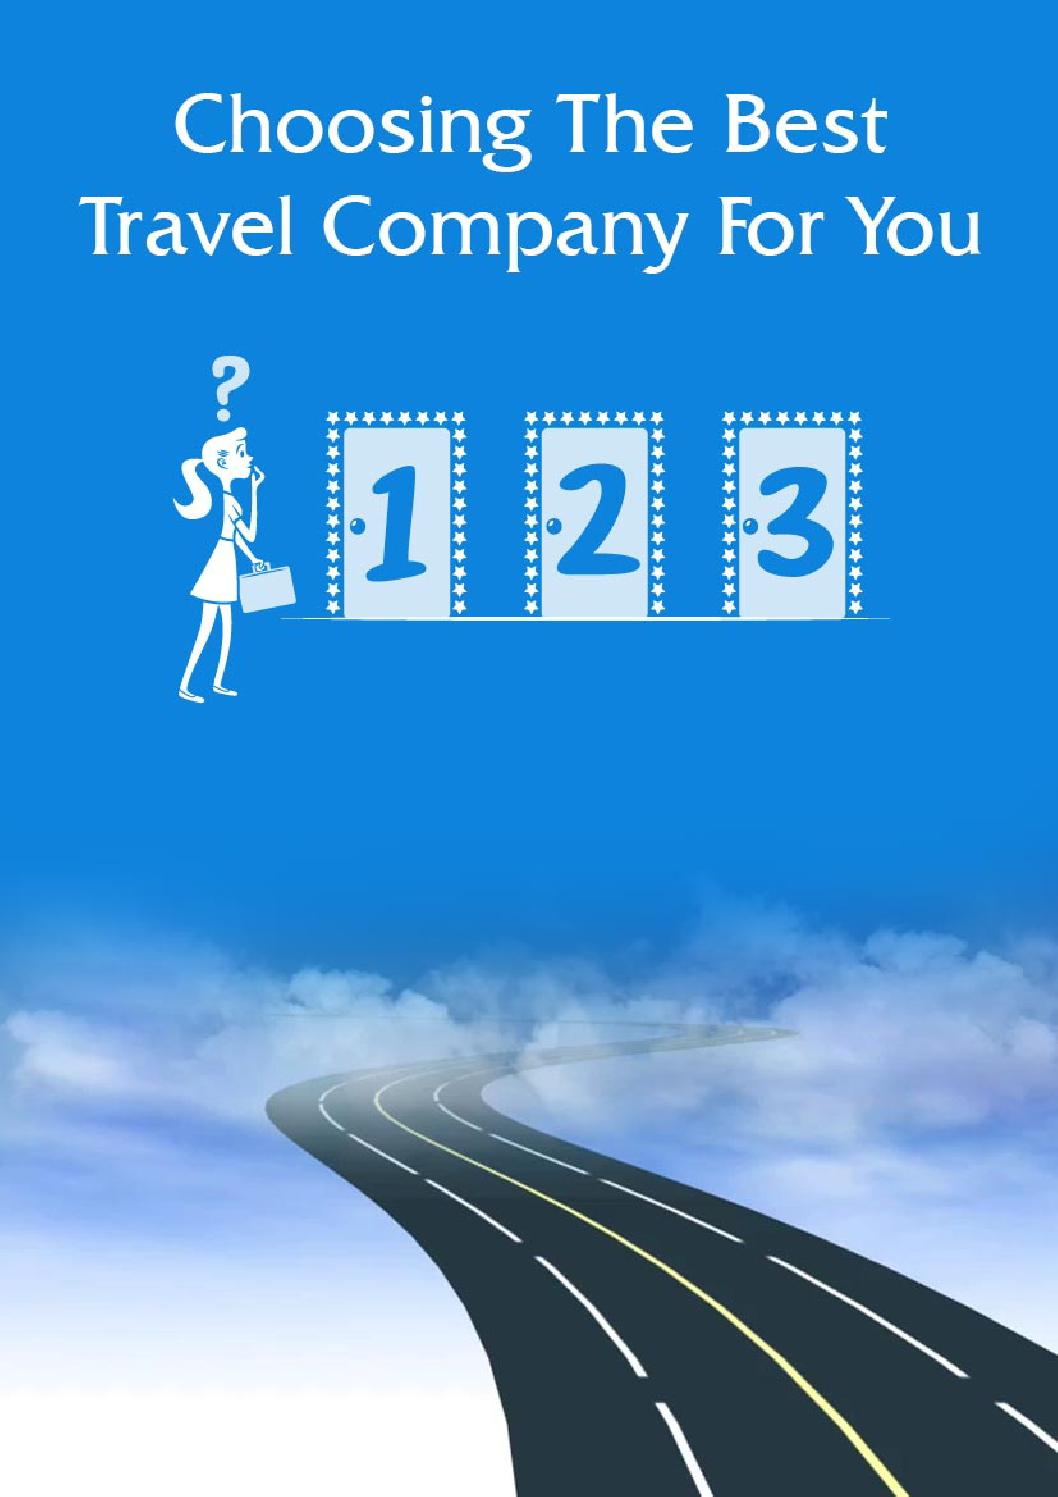 Choosing the best travel company for you by